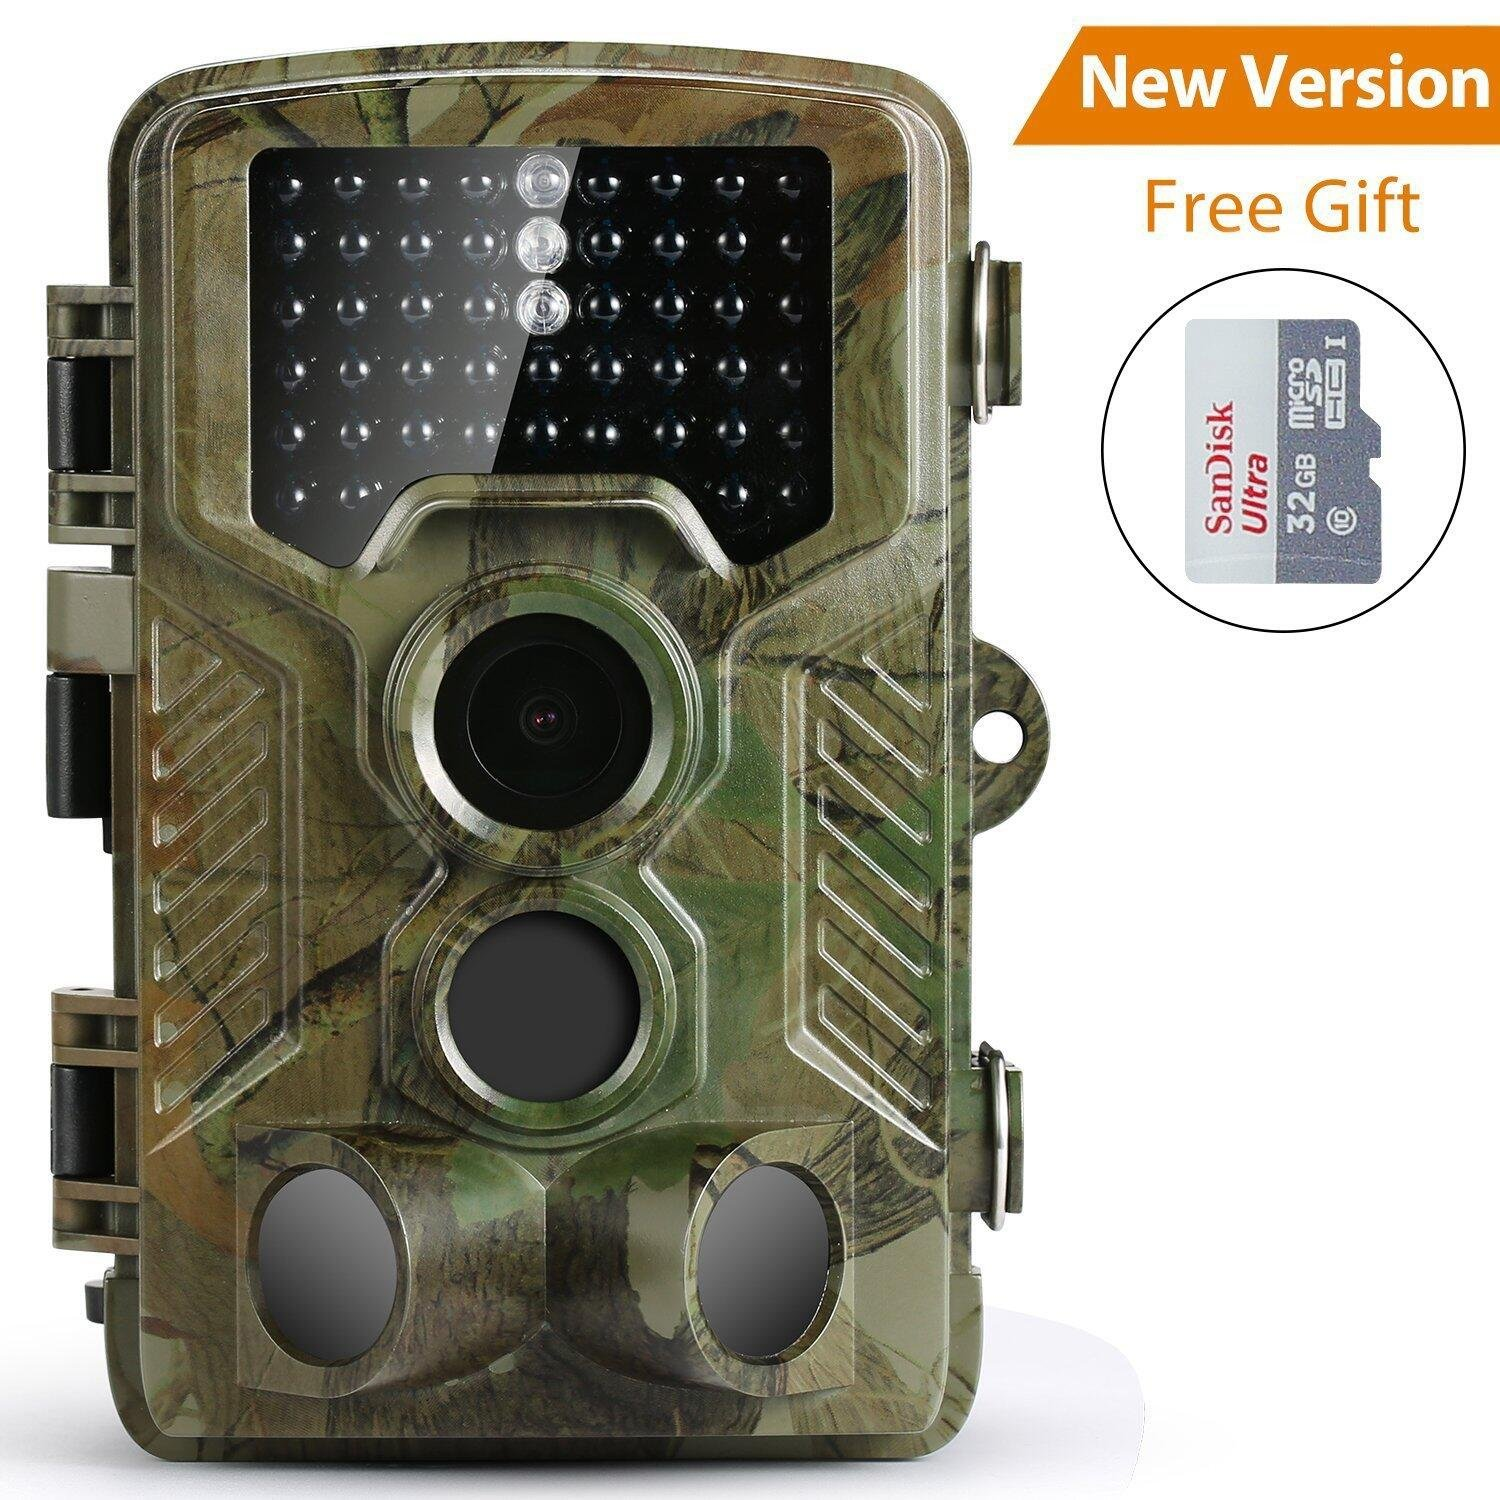 Trail Camera, Coolife HD 1080P 16MP 46 Infrared LEDs Waterproof IP56 Wildlife Camera 2.4'' LCD Screen Display Night Detection Vision 125 Degree PIR Lens Scouting Camera for Wildlife Monitoring, Surveillance, Home Security, including 32GB SD Card